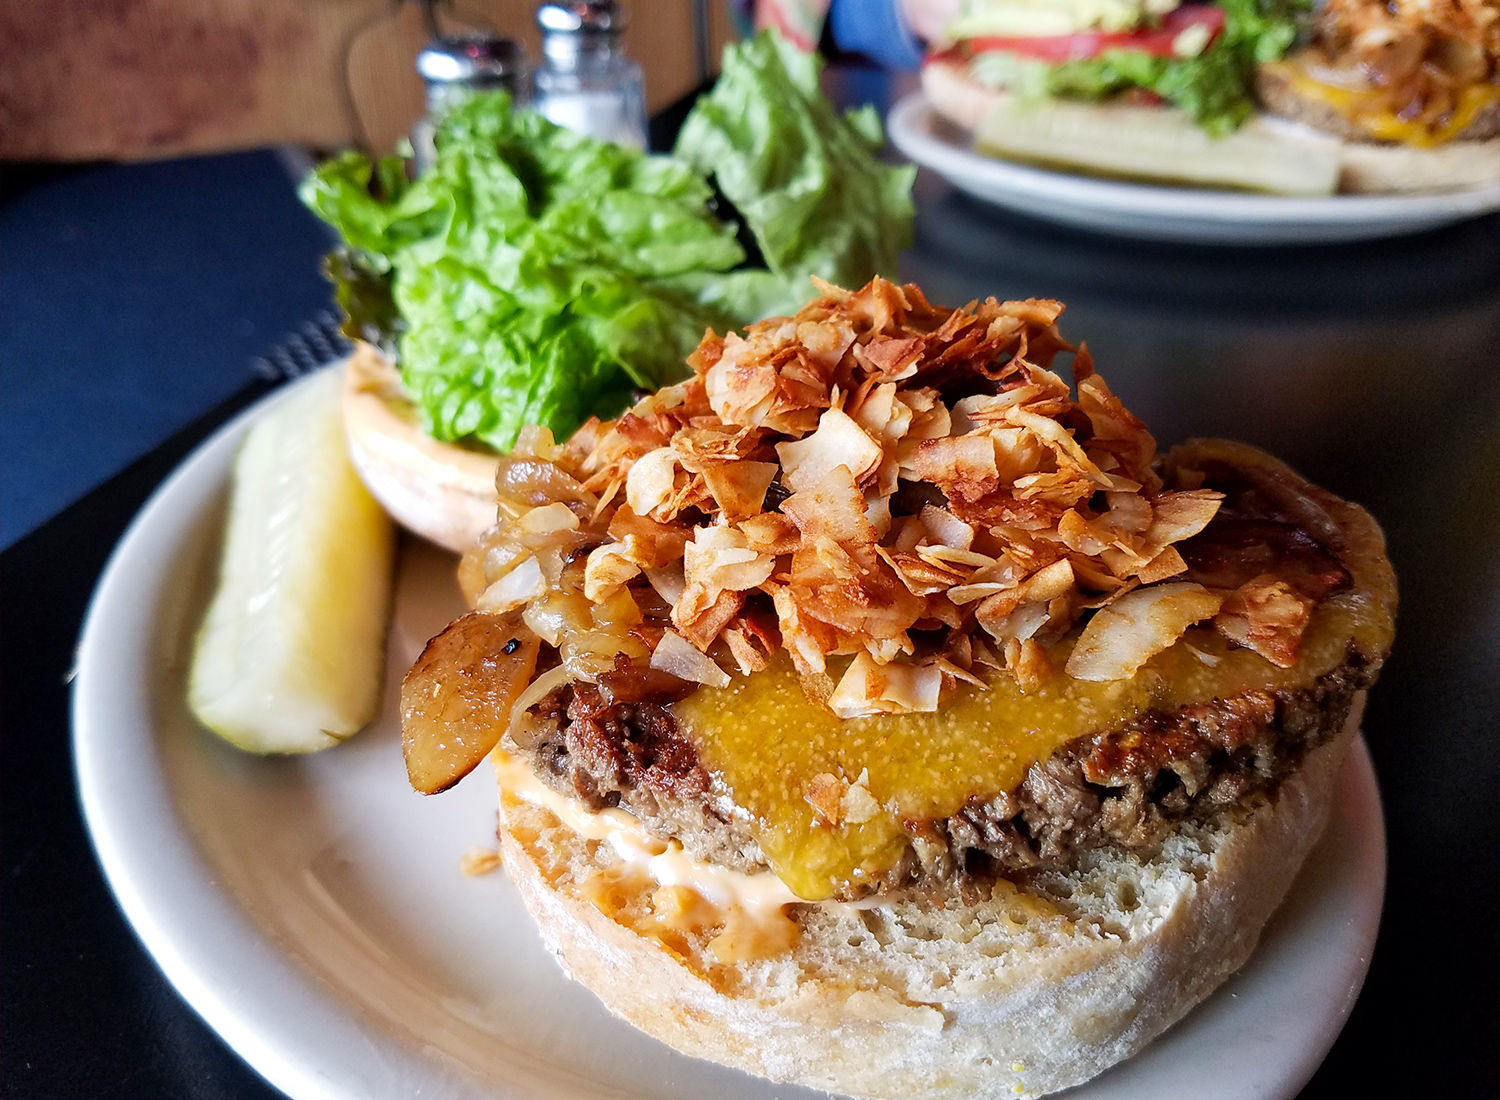 The Impossible Burger at Gaia's Garden in Santa Rosa looks, tastes and eats like a beef burger. Mostly. Heather Irwin/PD